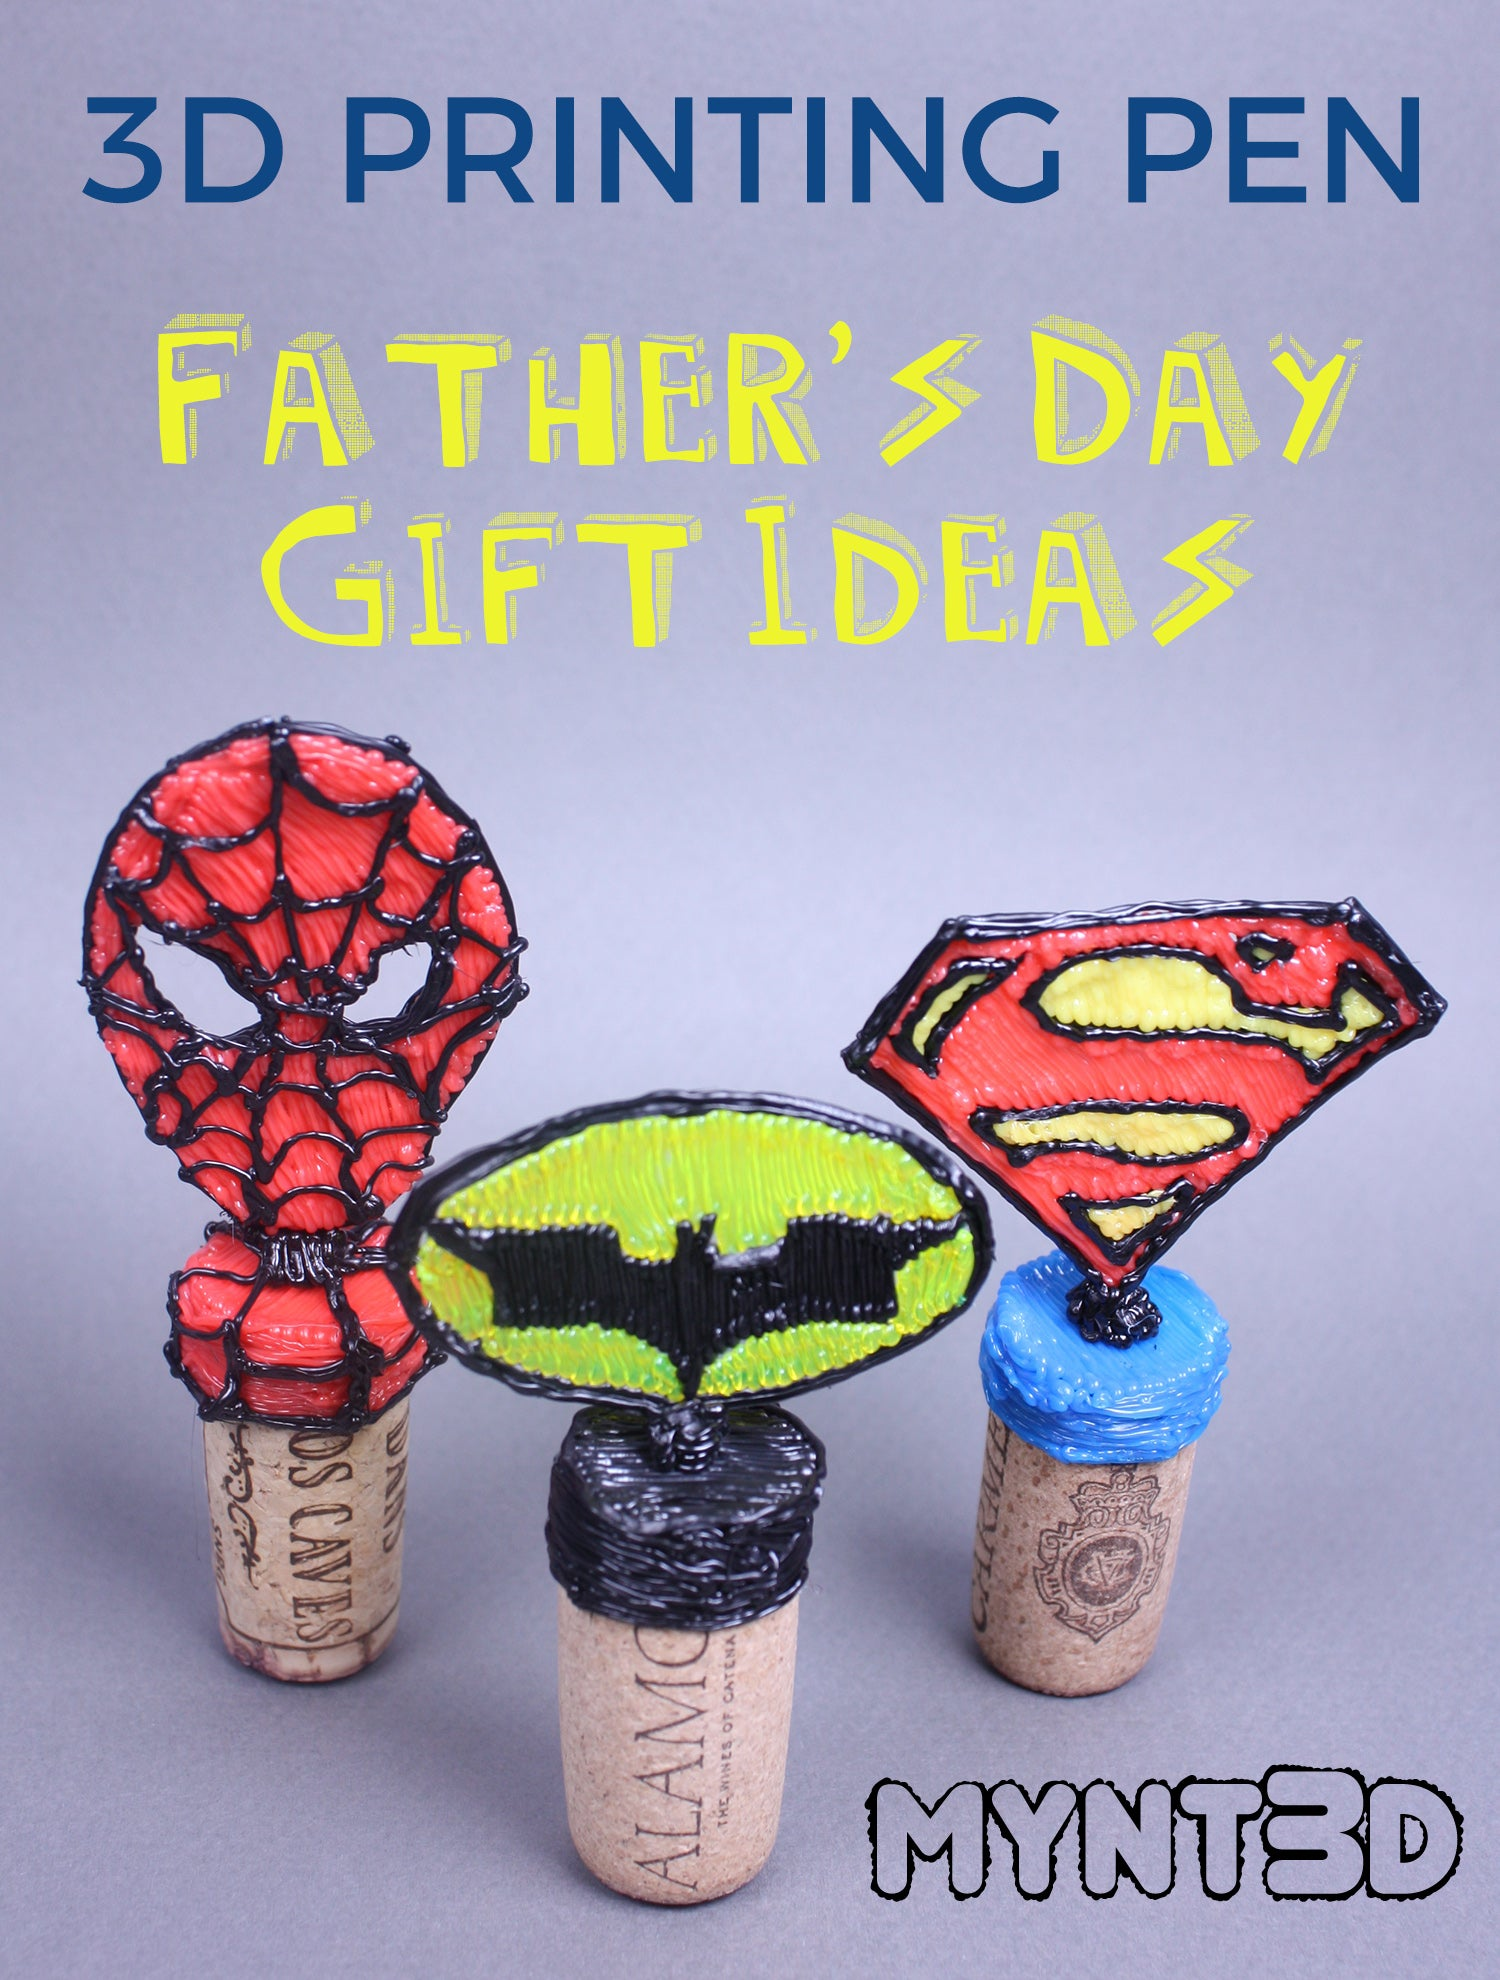 Father's Day Gift Ideas made with a 3D Pen